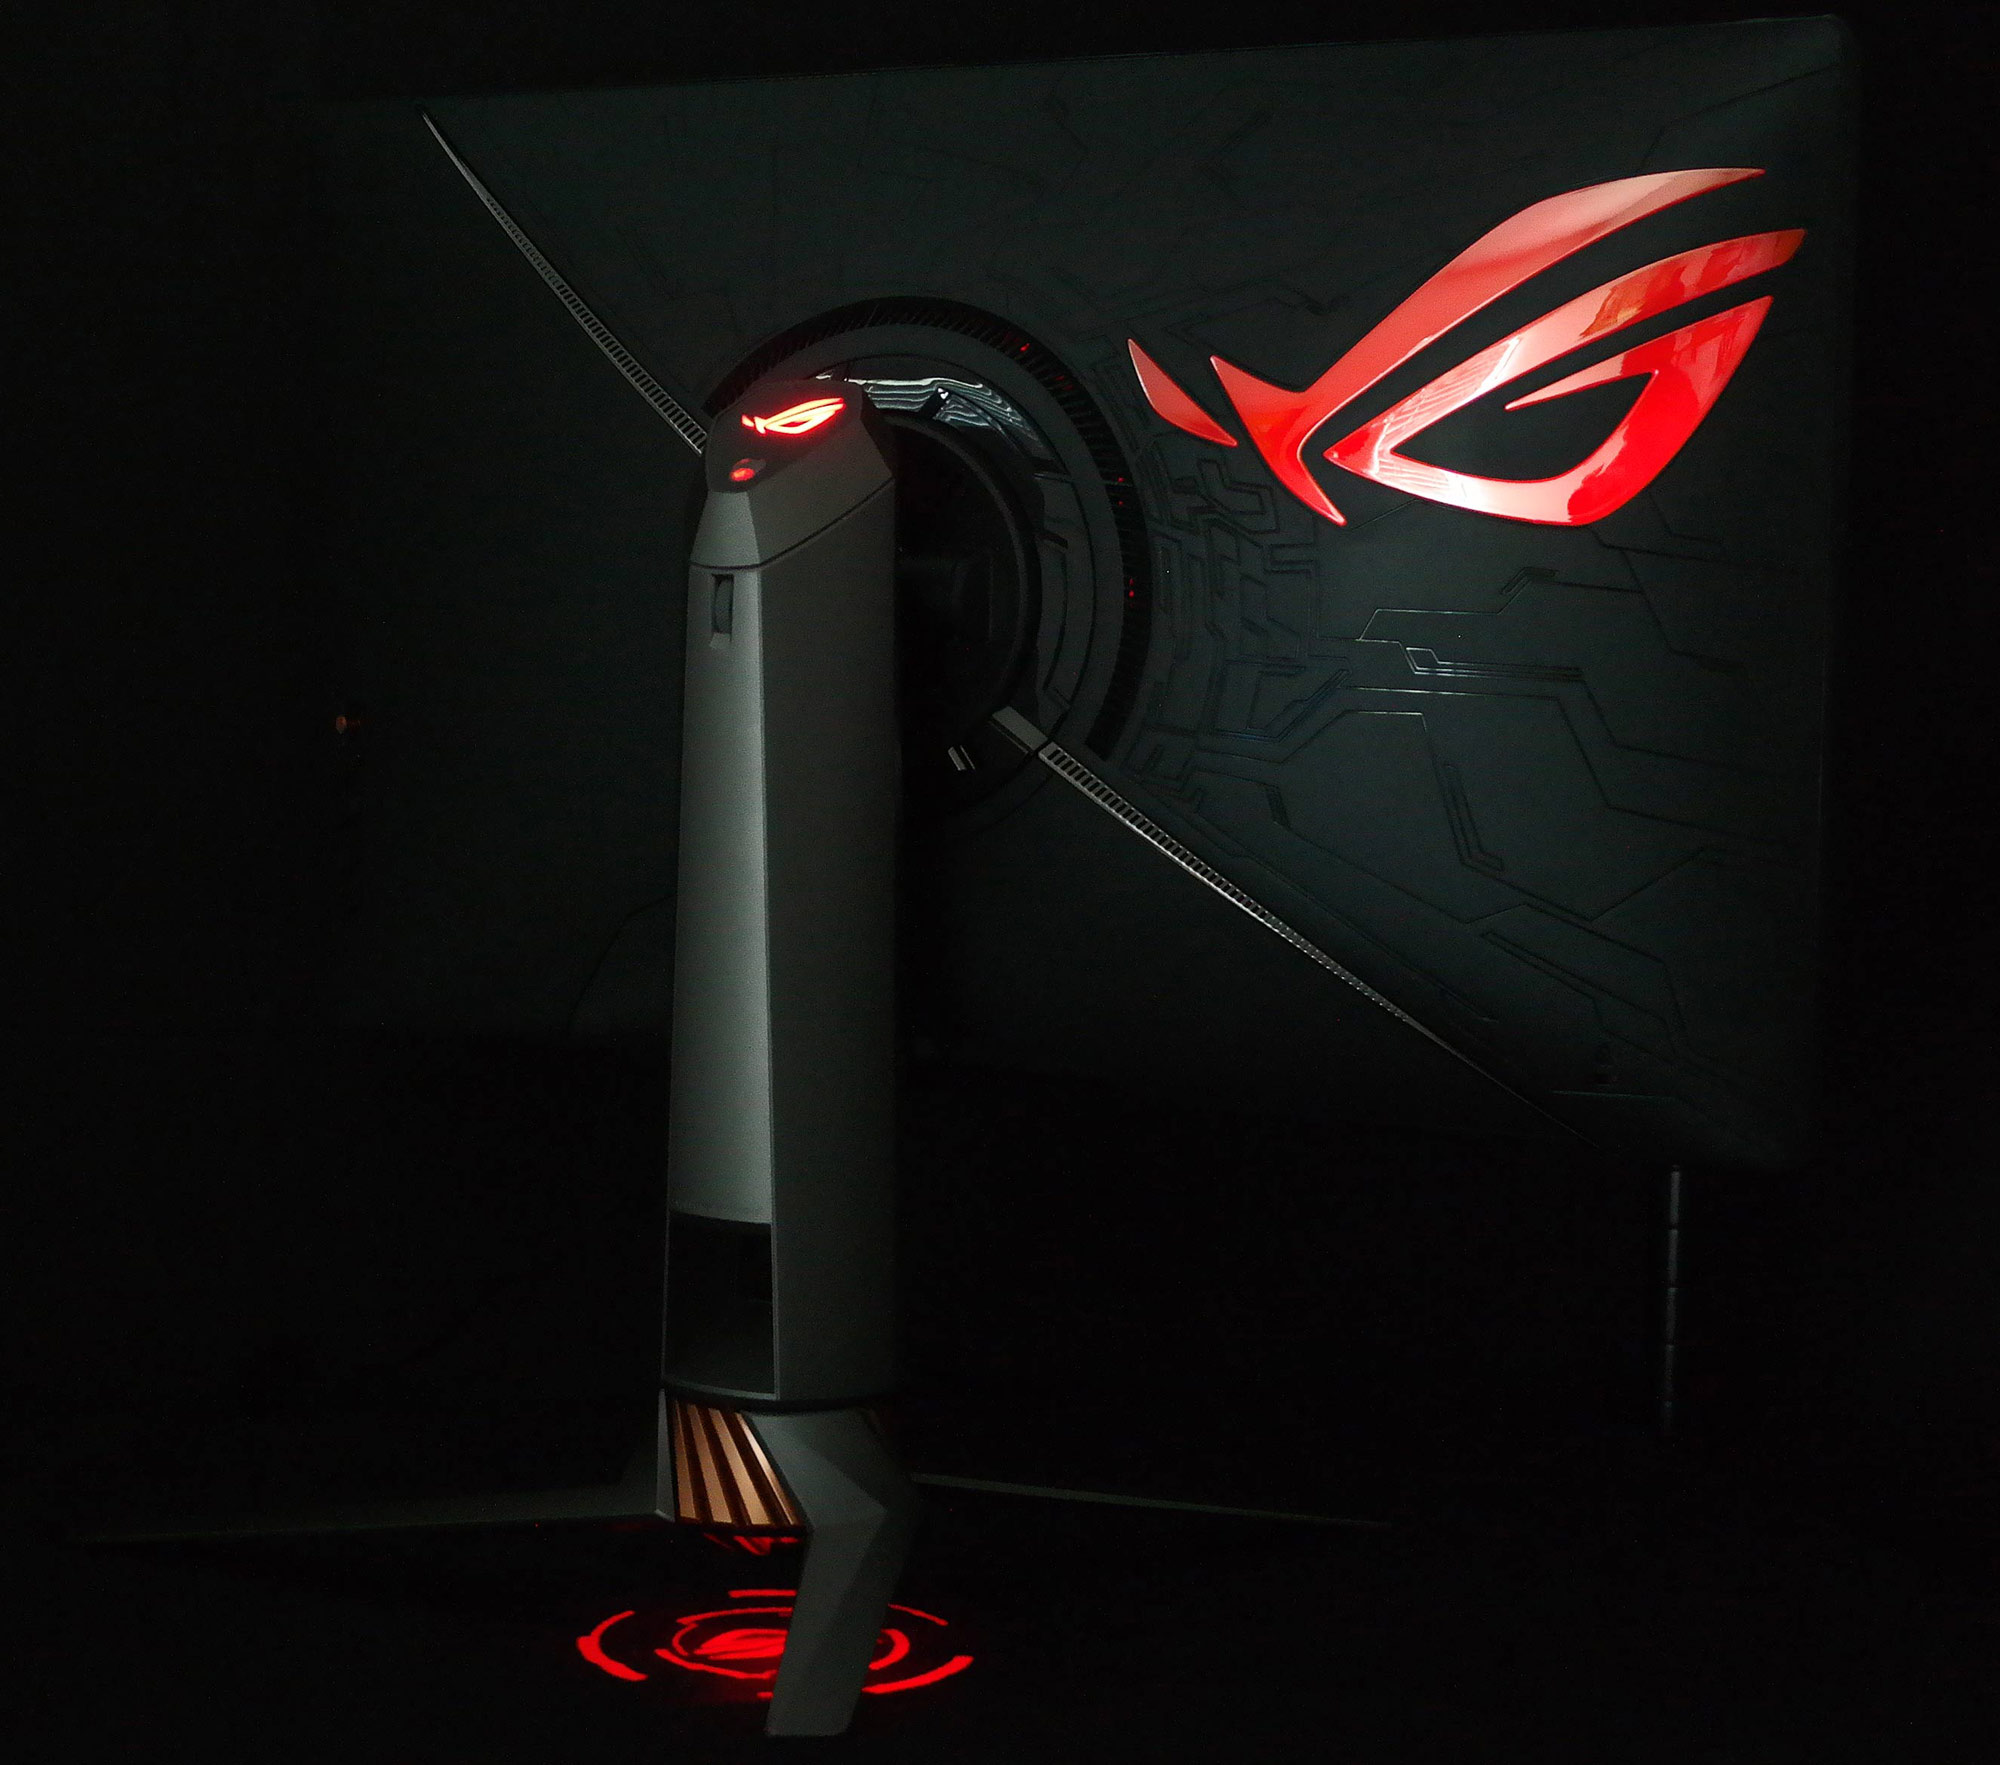 The ROG Swift PG27UQ packs 144Hz 4K and G-Sync HDR into the